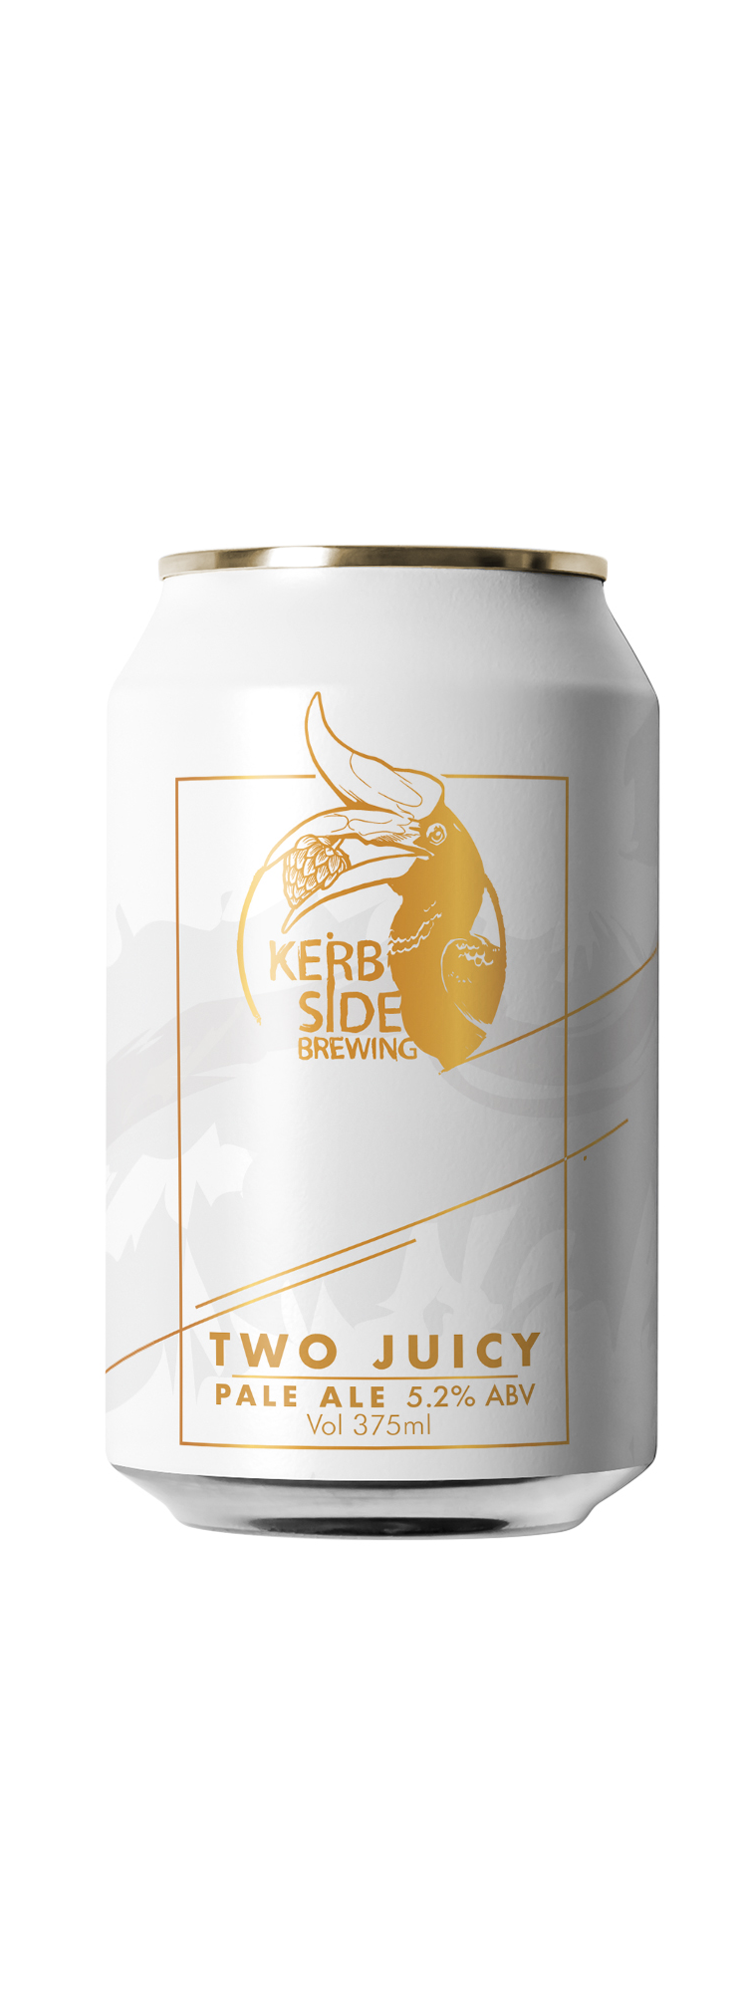 Two Juicy Pale Ale 24 x 375ml